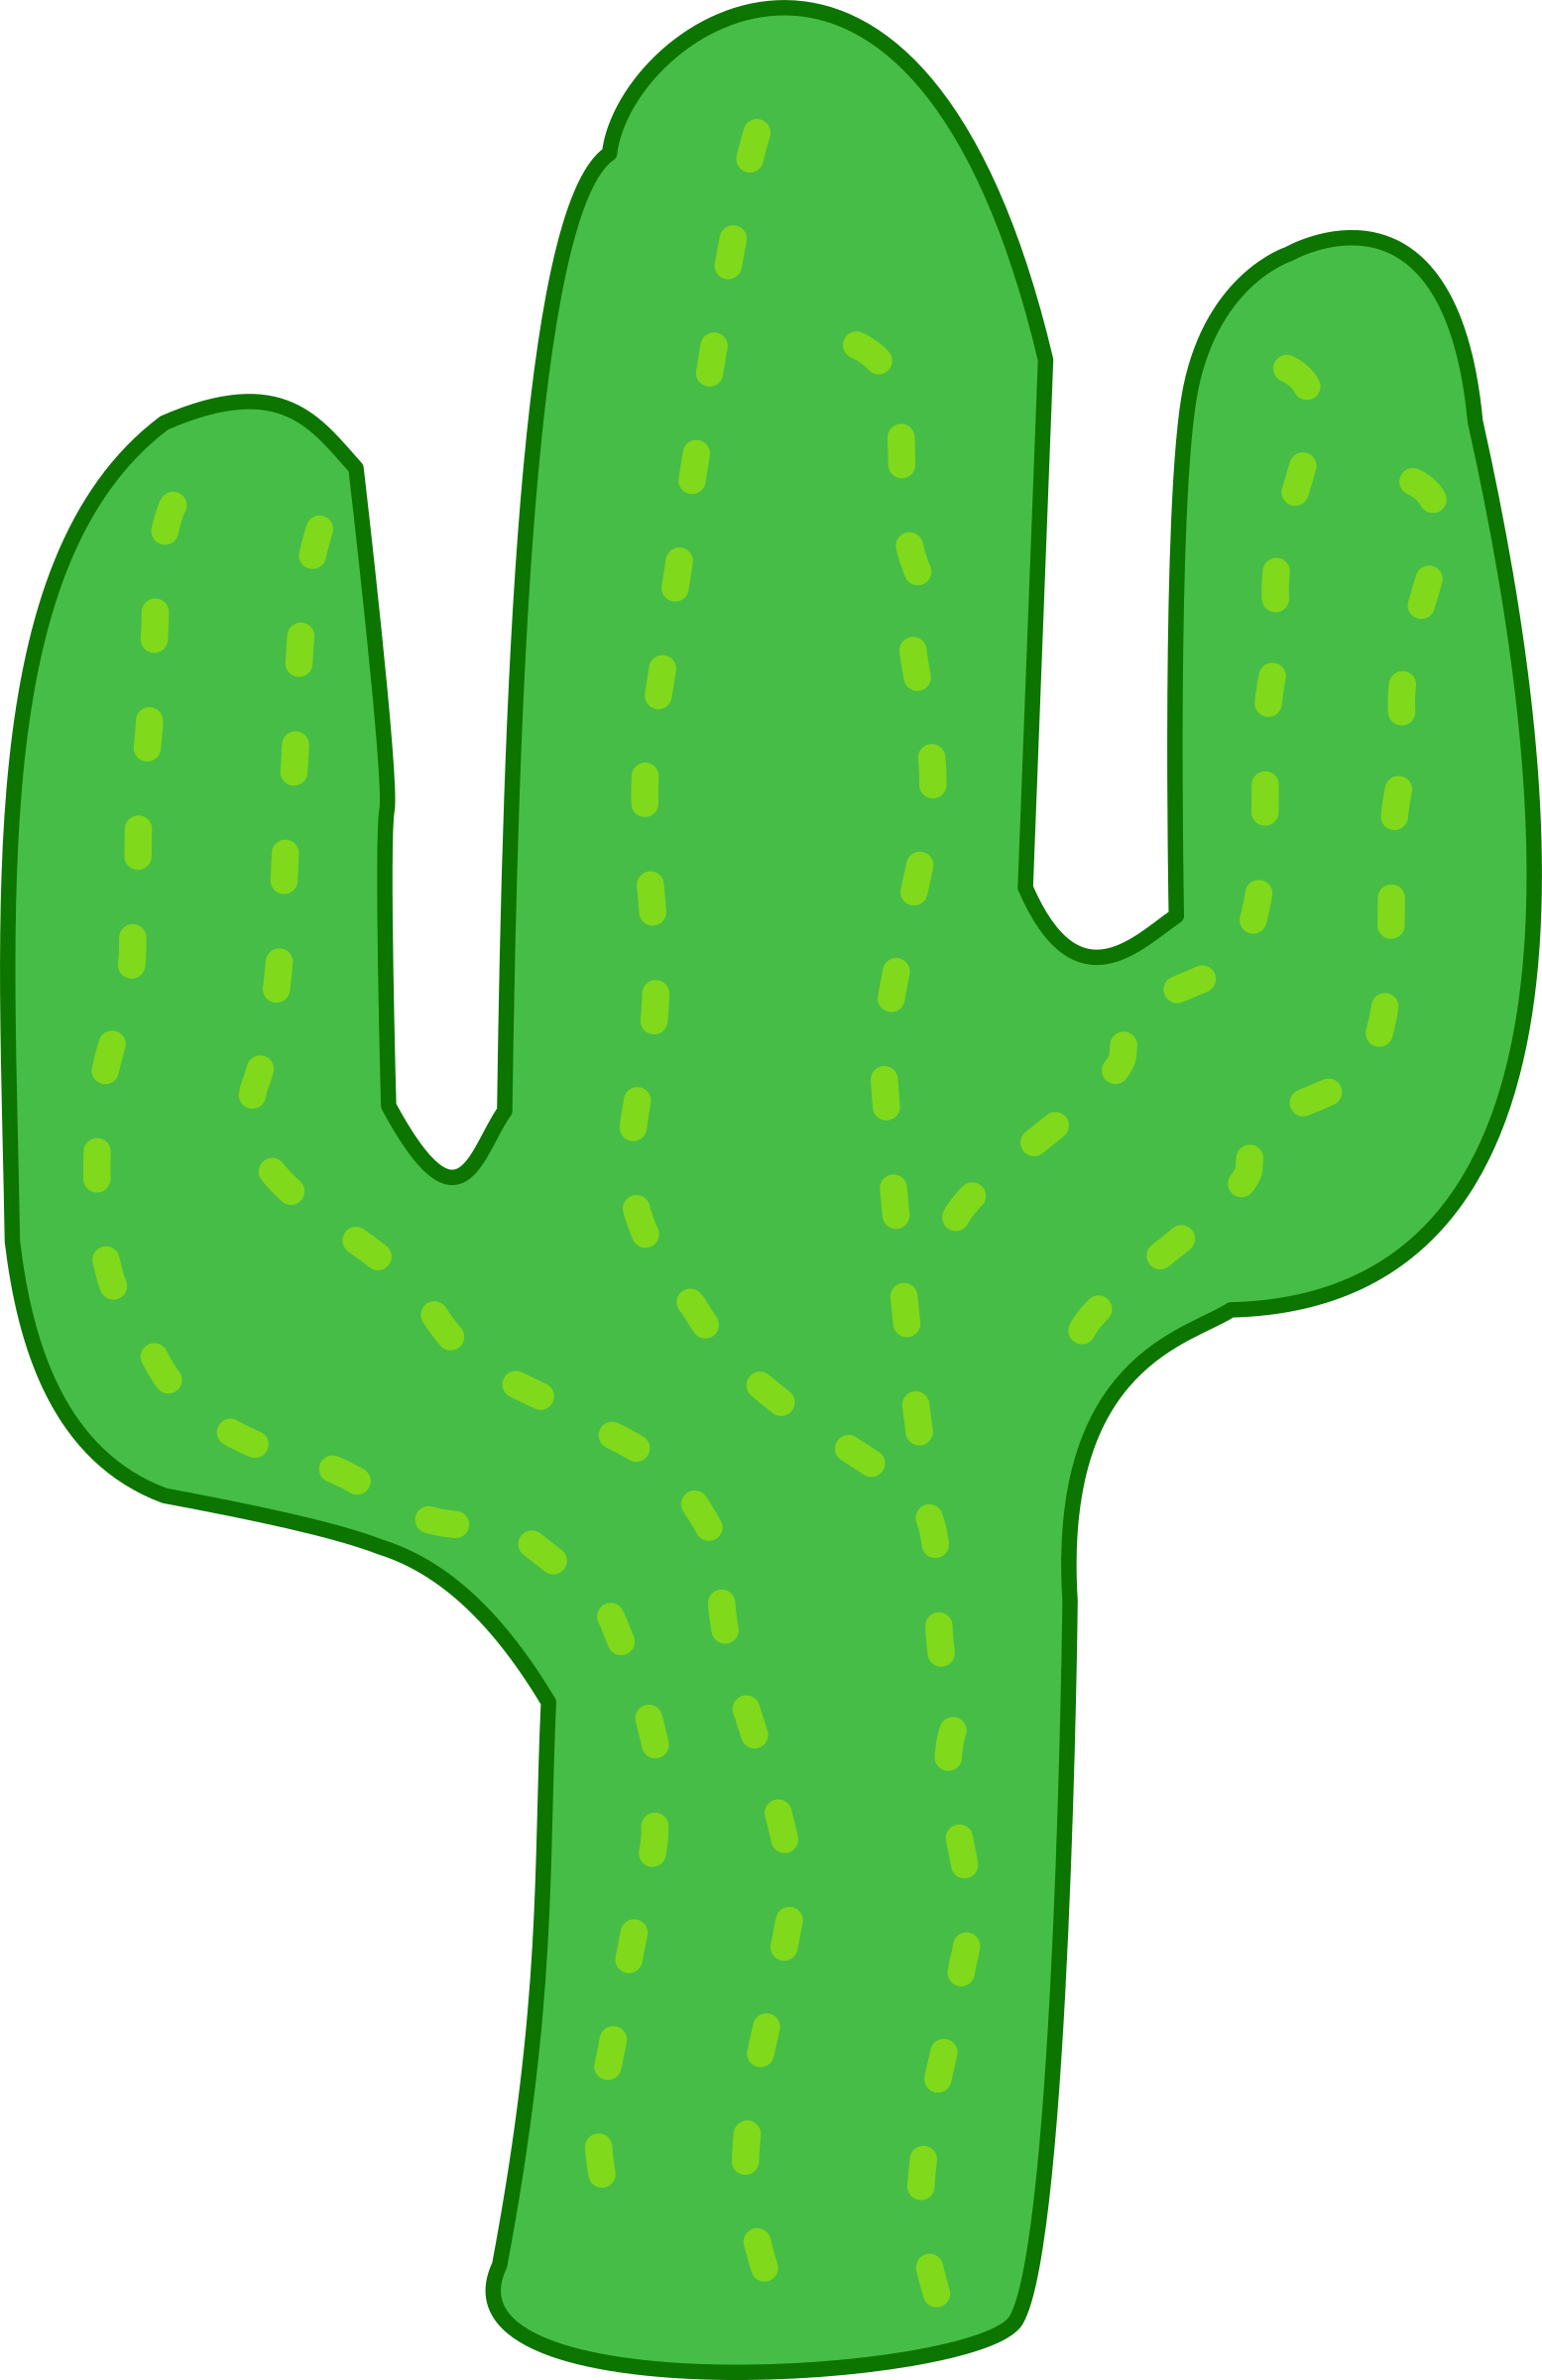 Christmas cactus clipart vector free library I'm a hugger | Silhouette Inspiration | Pinterest | Cacti and Filofax vector free library